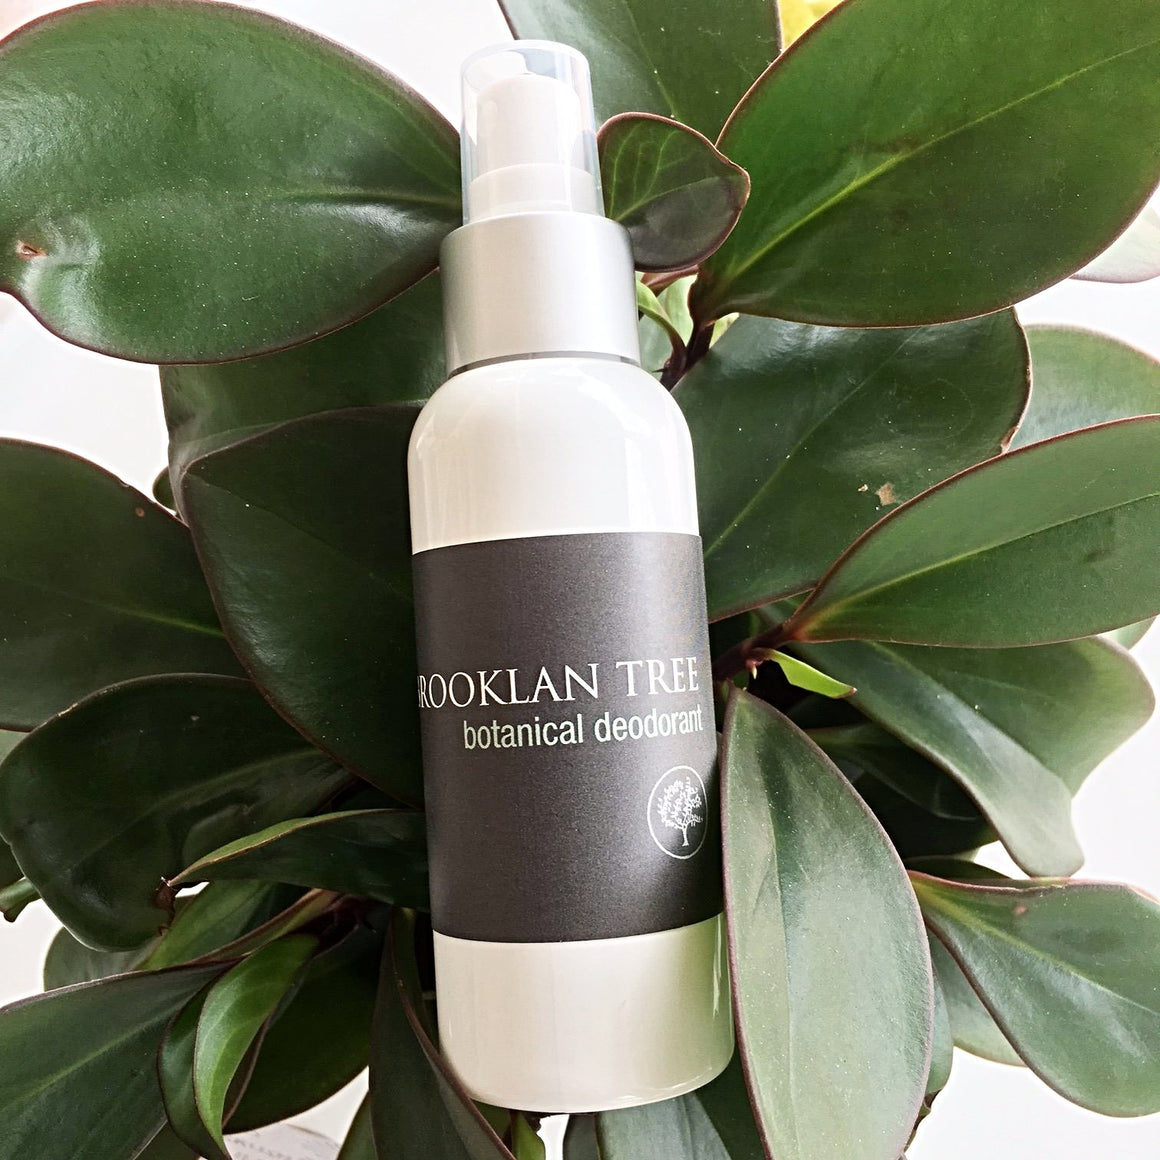 Botanical Deodorant - Brooklan Tree